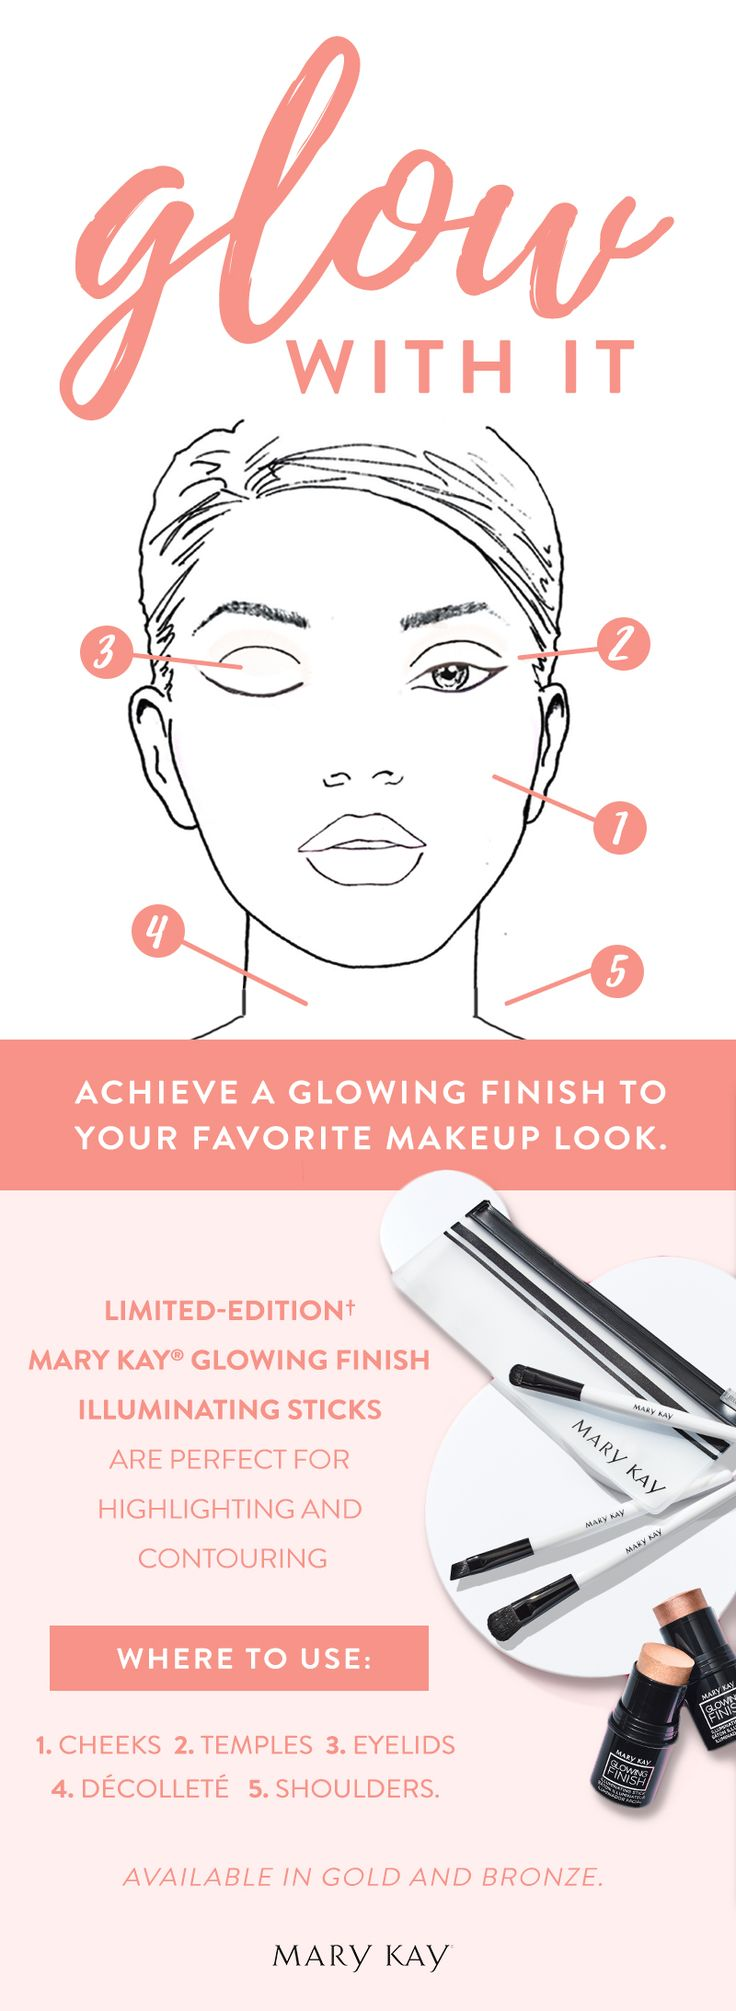 Ready to glow with it? Highlight and contour with the Limited-Edition† Mary Kay® Glowing Finish Illuminating Sticks! The mini, purse-size stick is great to take along to holiday parties.